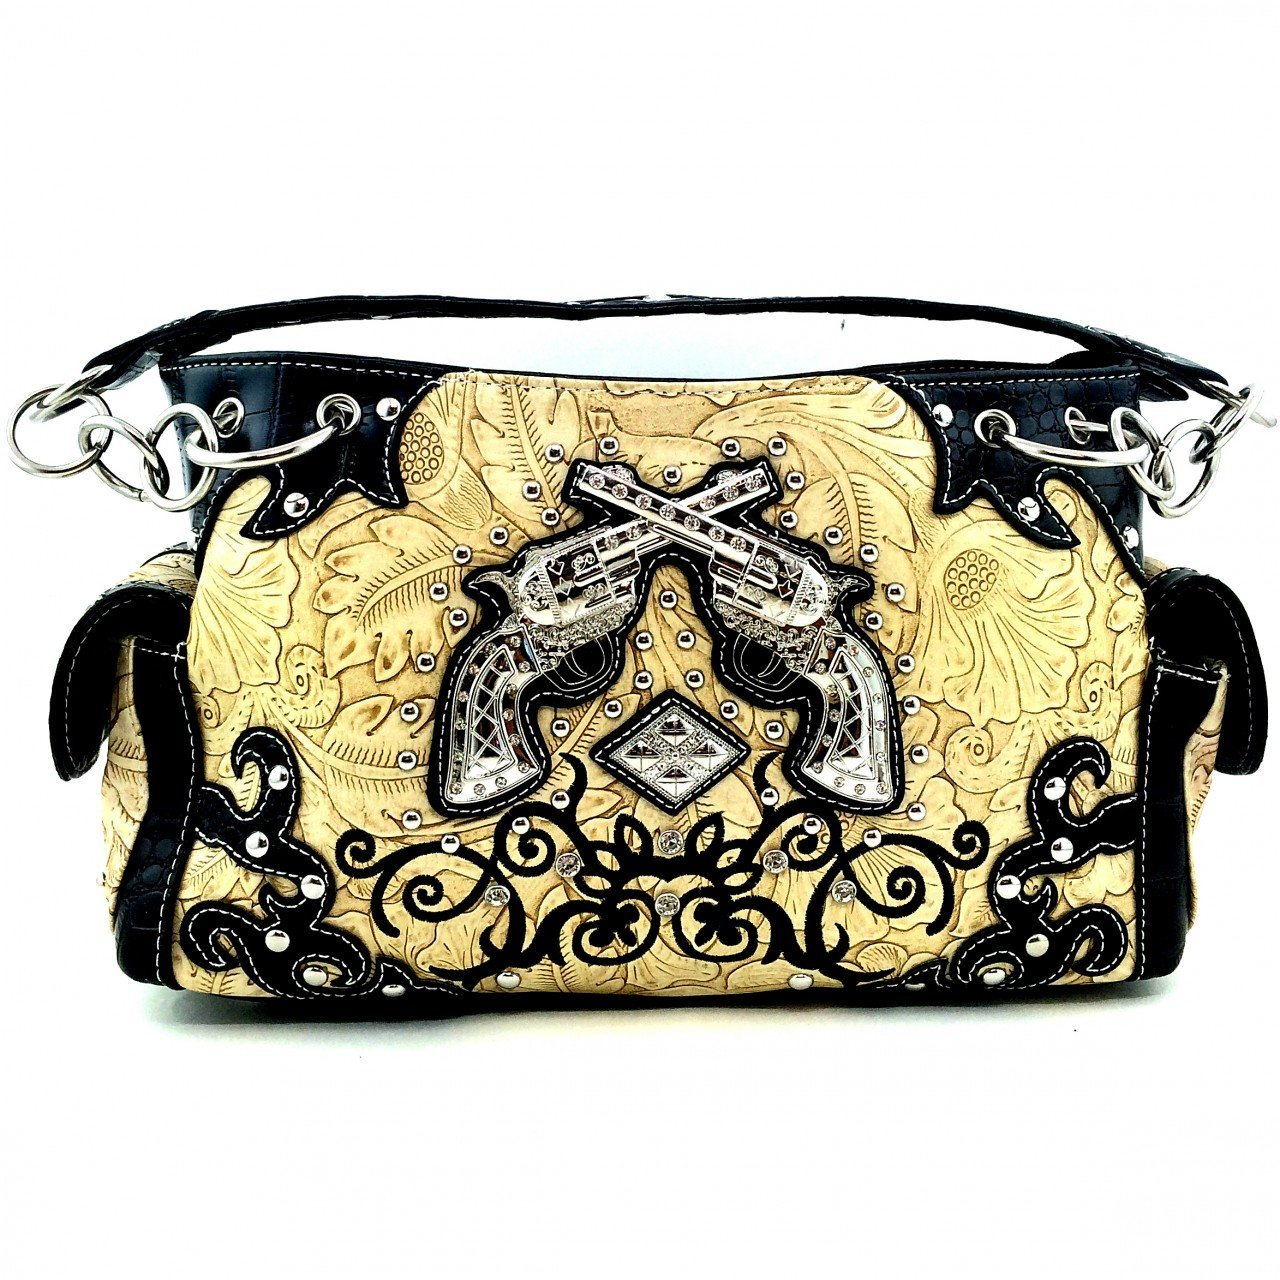 Embossed Western Rhinestone Pistols Purse w/ Concealed Weapon Gun Pocket (Black)